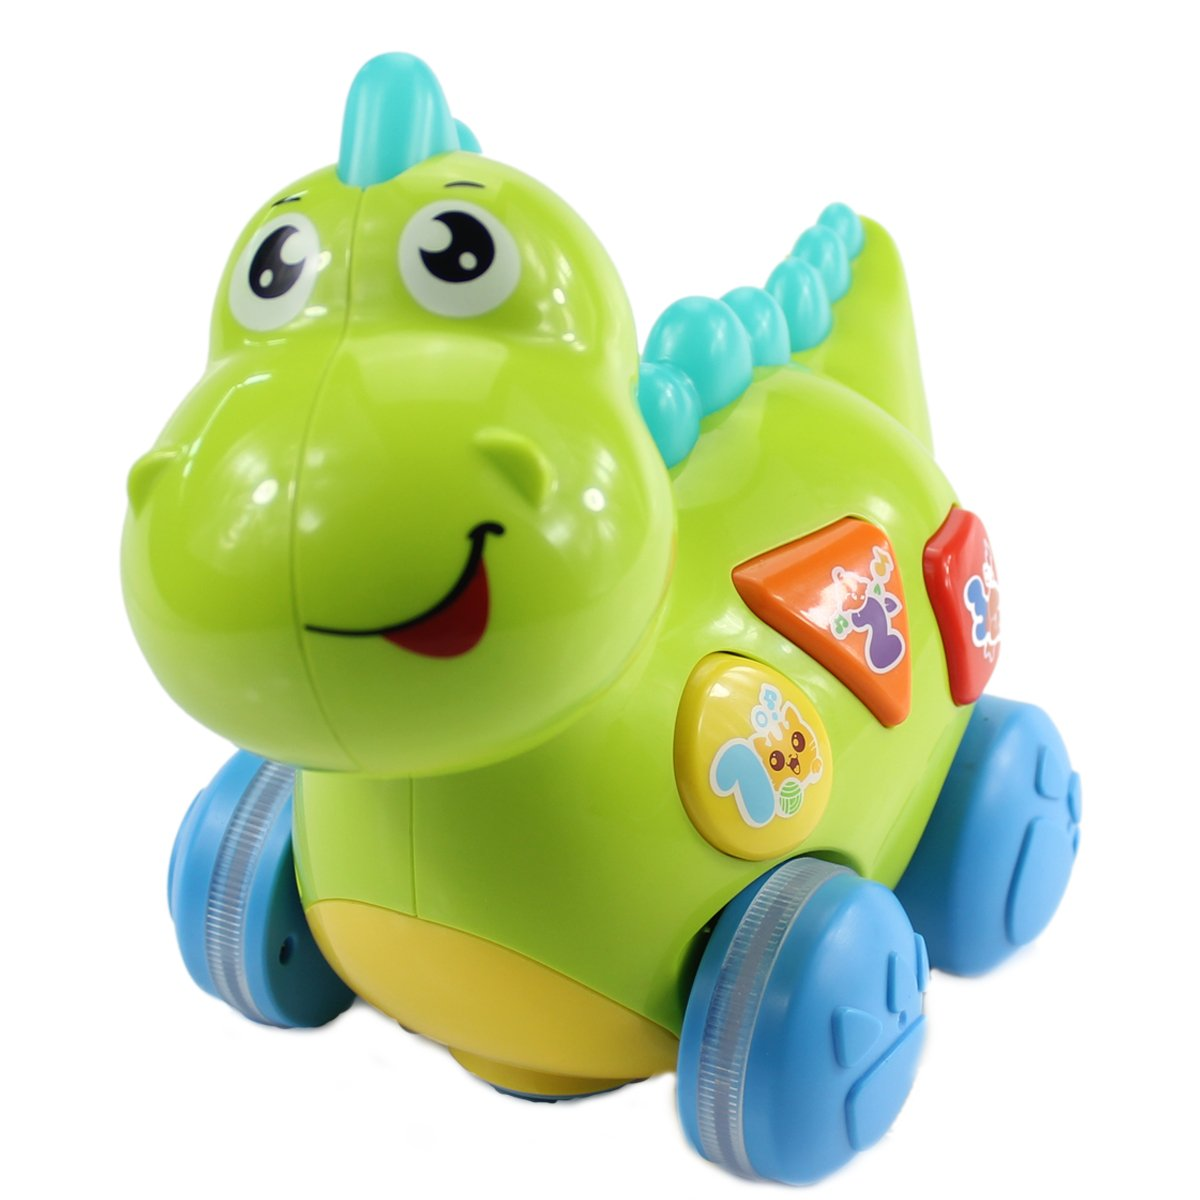 fisca Baby Toys Musical Walking Dinosaur for Babies & Toddlers, Preschool Learning Educational Toys with Lights and Music